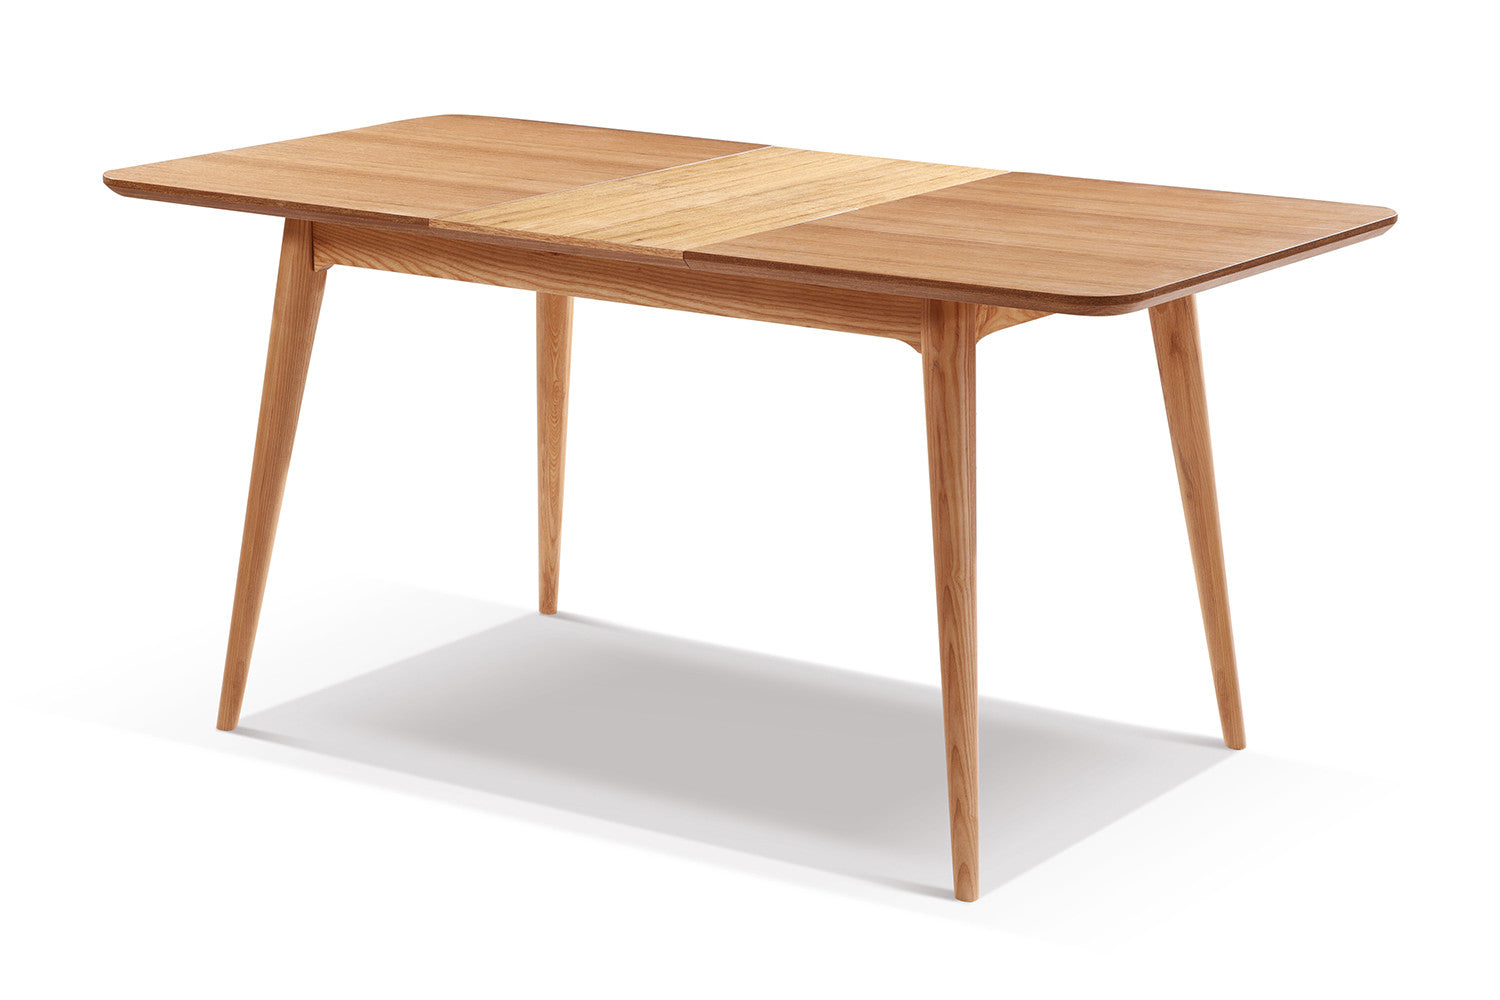 Table de salle manger extensible en bois adda dewarens for Table rallonge bois